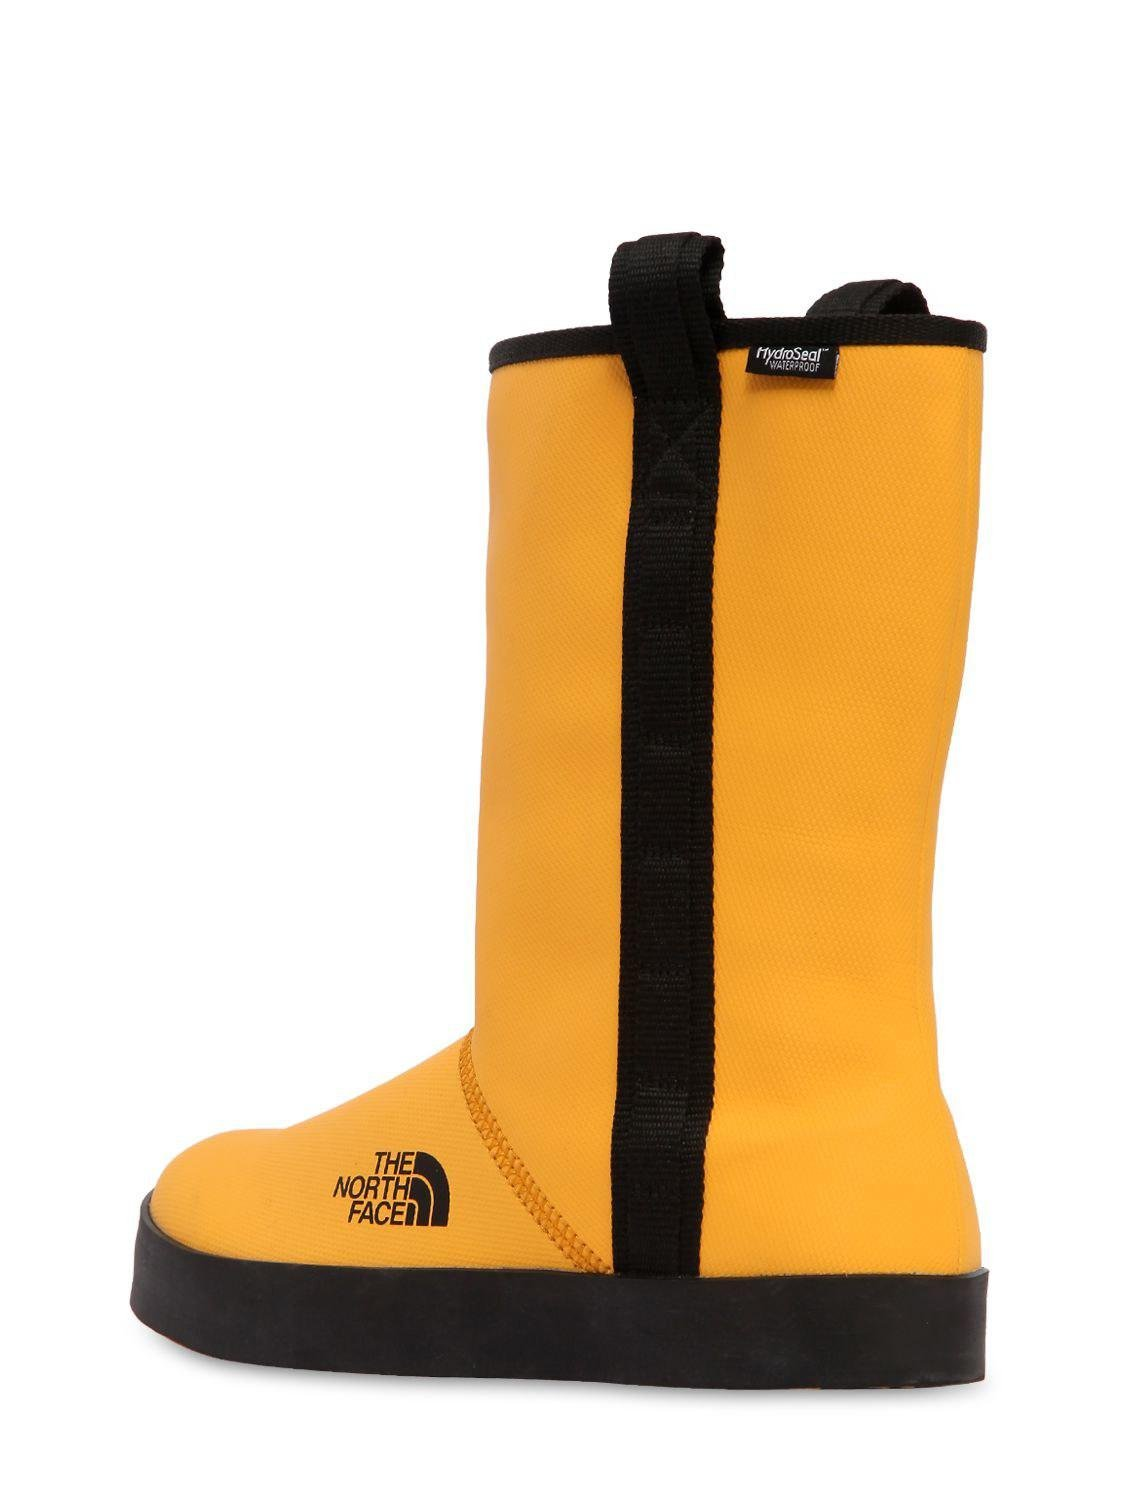 The North Face Base Camp Waterproof Short Rain Boots in Yellow